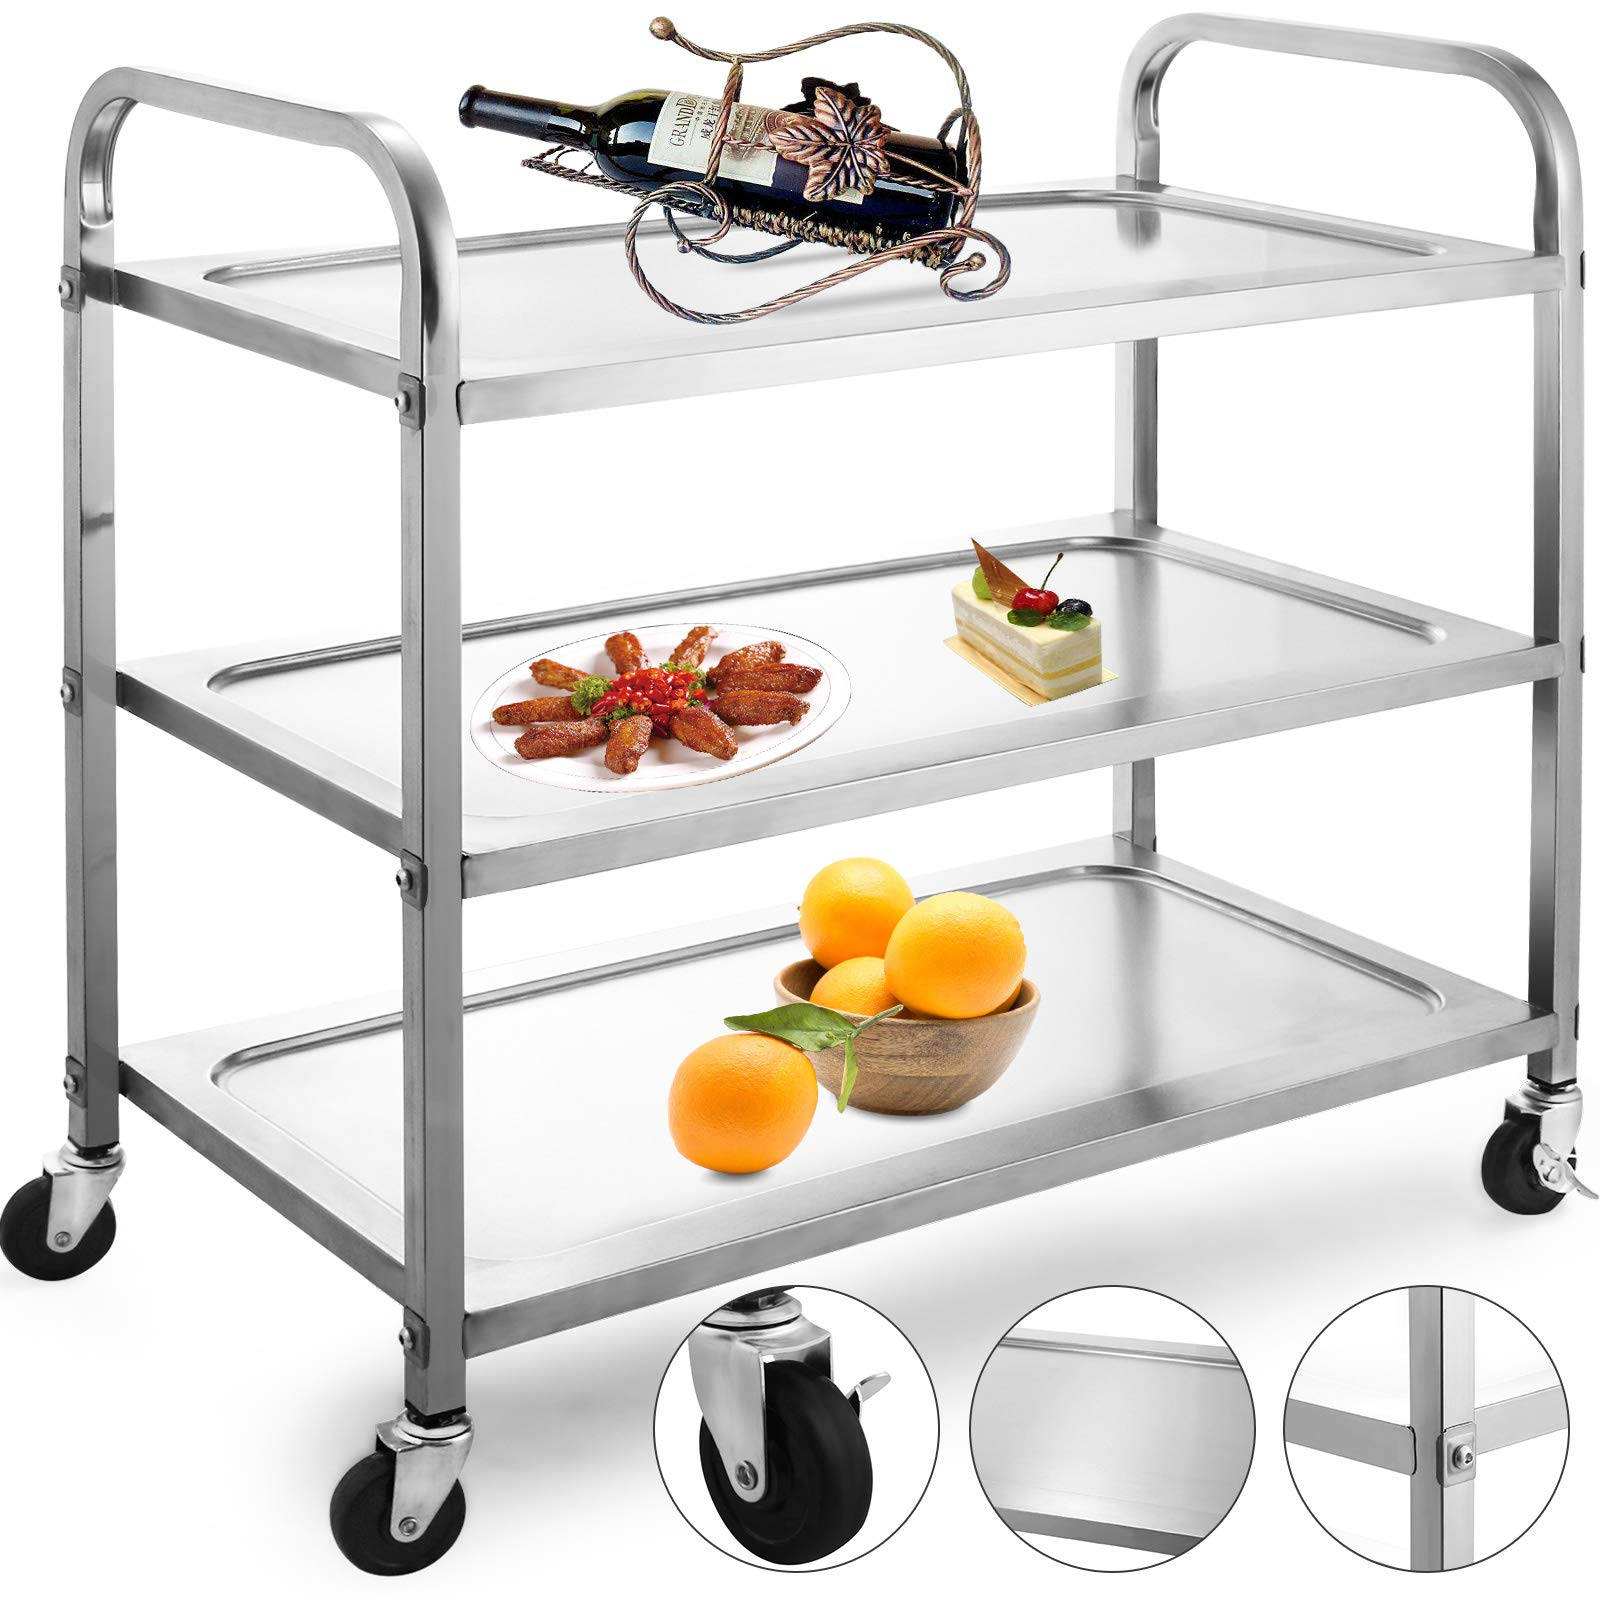 VBENLEM Utility Cart 3 Shelf Utility Cart on Wheels 330Lbs Stainless Steel Cart Kitchen Bus Cart Food Cart Catering Rolling Dolly with Double Handle by VBENLEM